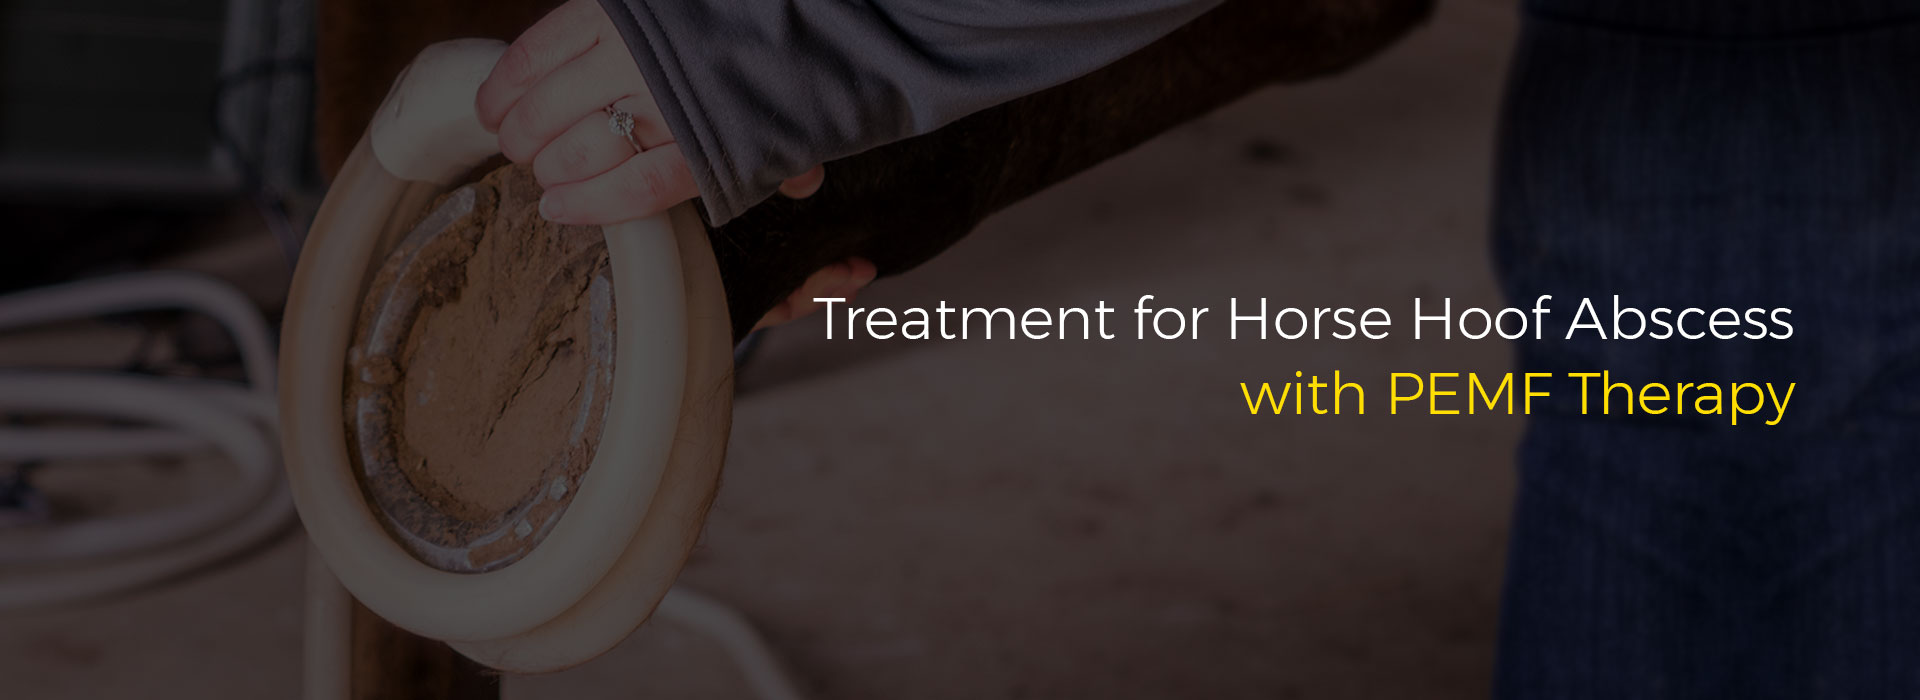 Treatment for Horse Hoof Abscess with PEMF Therapy